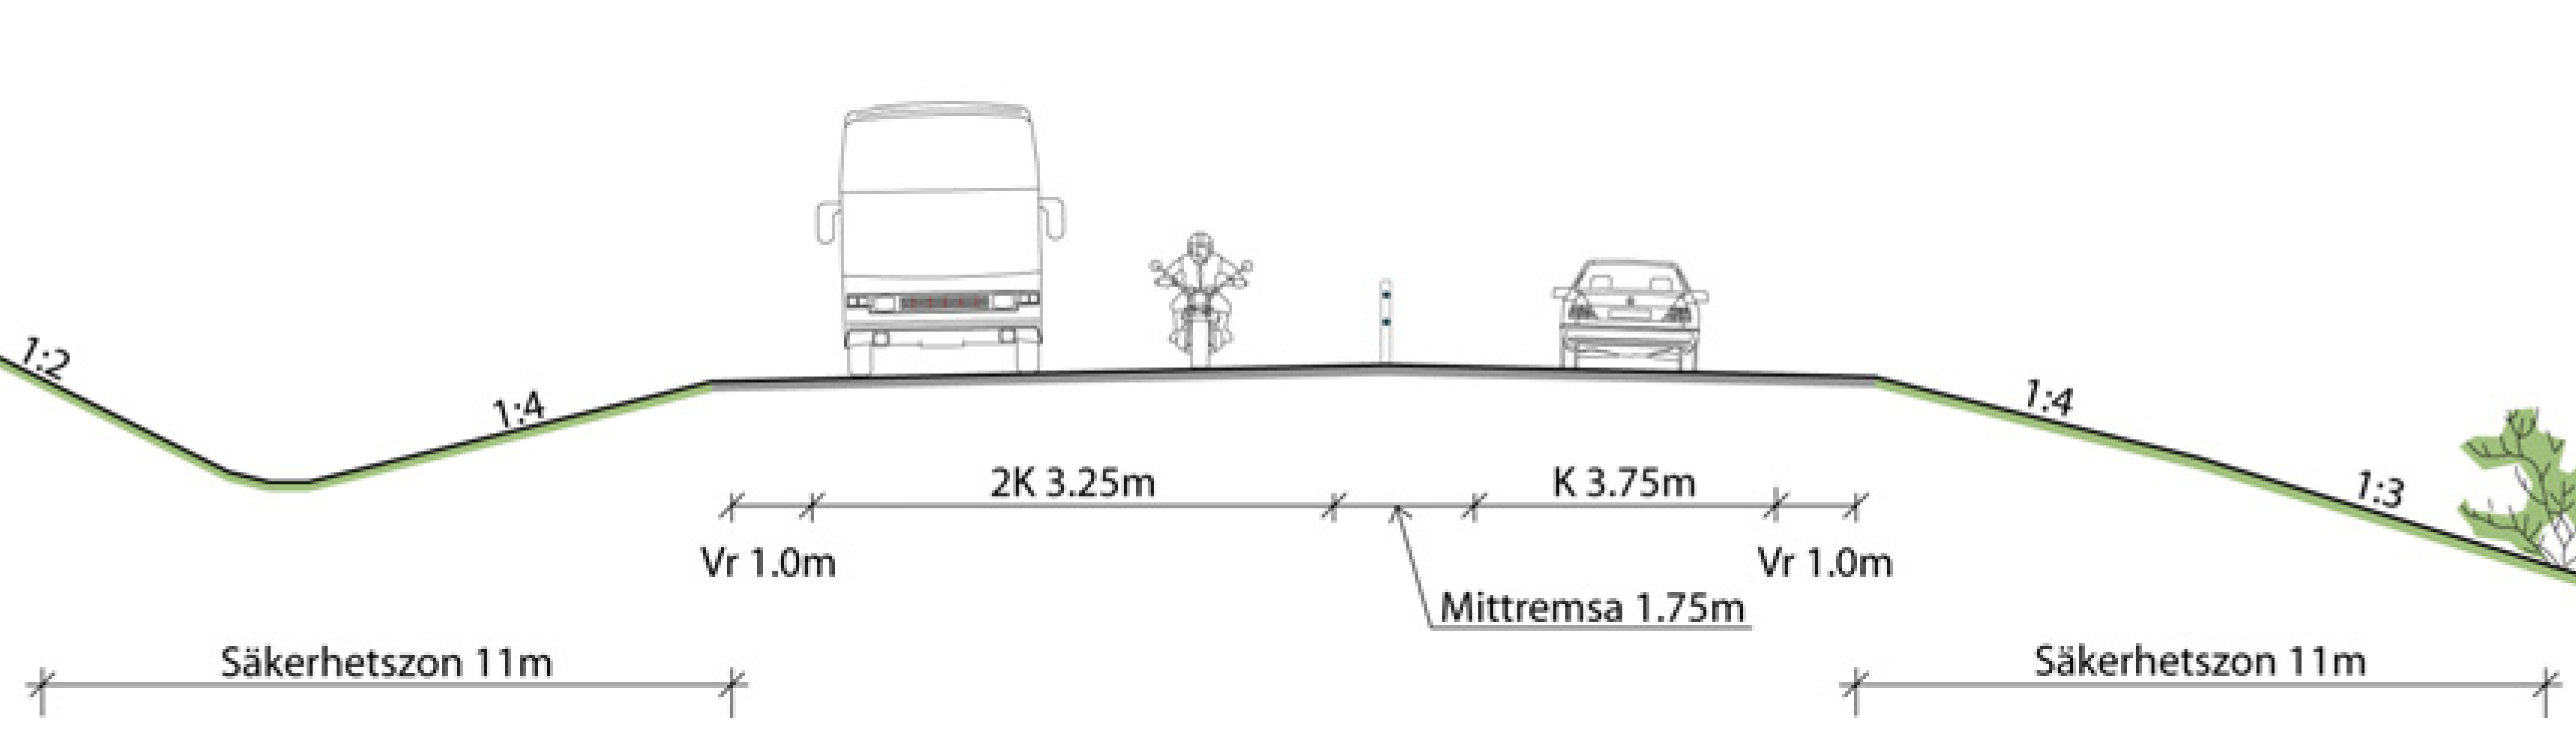 File:Type-section Swedish 2+1 highway.png - Wikimedia Commons